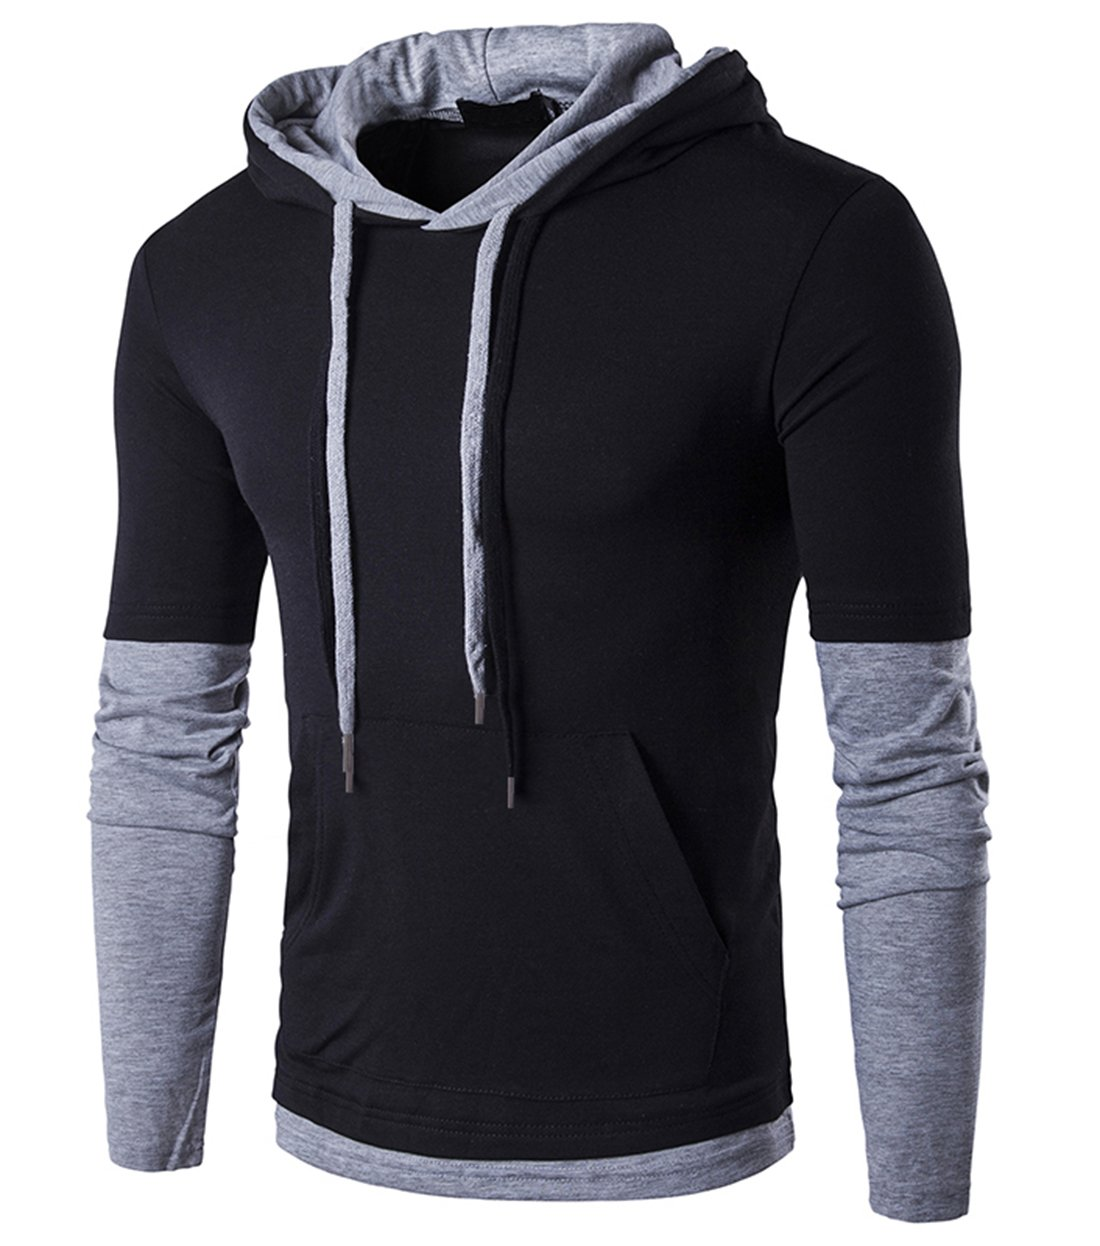 SIR7 Men's Stylish Hooded T Shirt Casual Long Sleeve Hipster Hip Hop Hoodie Shirts Black M